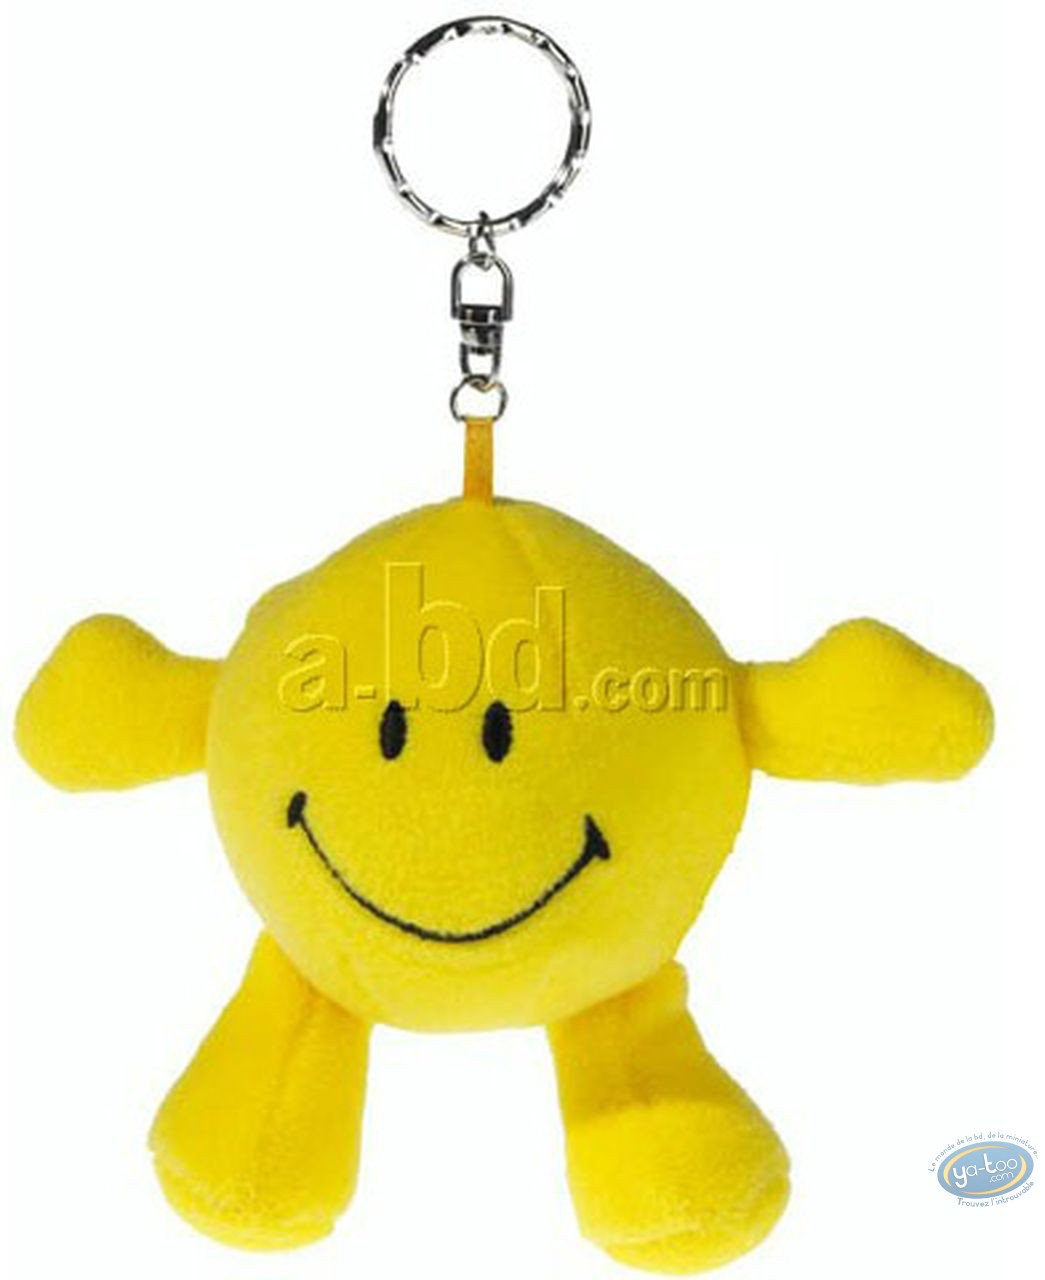 Keyring, Smiley : Plush Key ring, Smiley